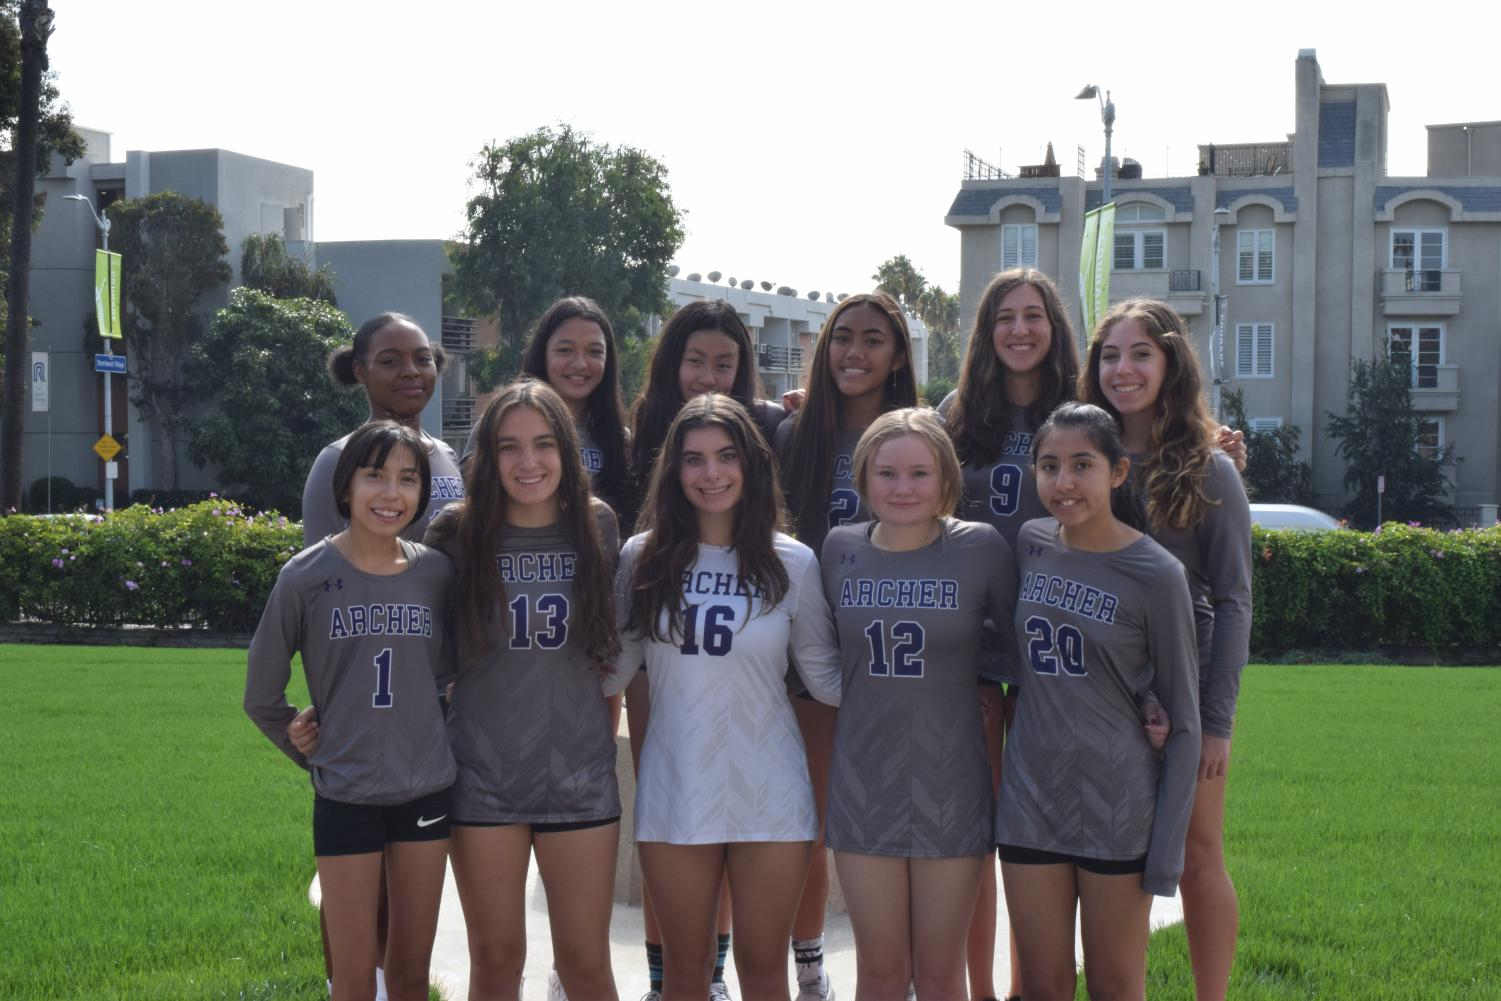 Giana Parks '21, Ali Aragon '22, Katelyn Chi'22, Faith Soriano '22, Arielle Janger '20, Emily Eshel '21, Andrea Ramirez '22, Mikayla Weinhouse '22, Zoe Berman '21, Amber Calvert-Jones'21 and Mikaela Foronda '22 pose for a photo in front of Archer. The team is open to all upper school students.